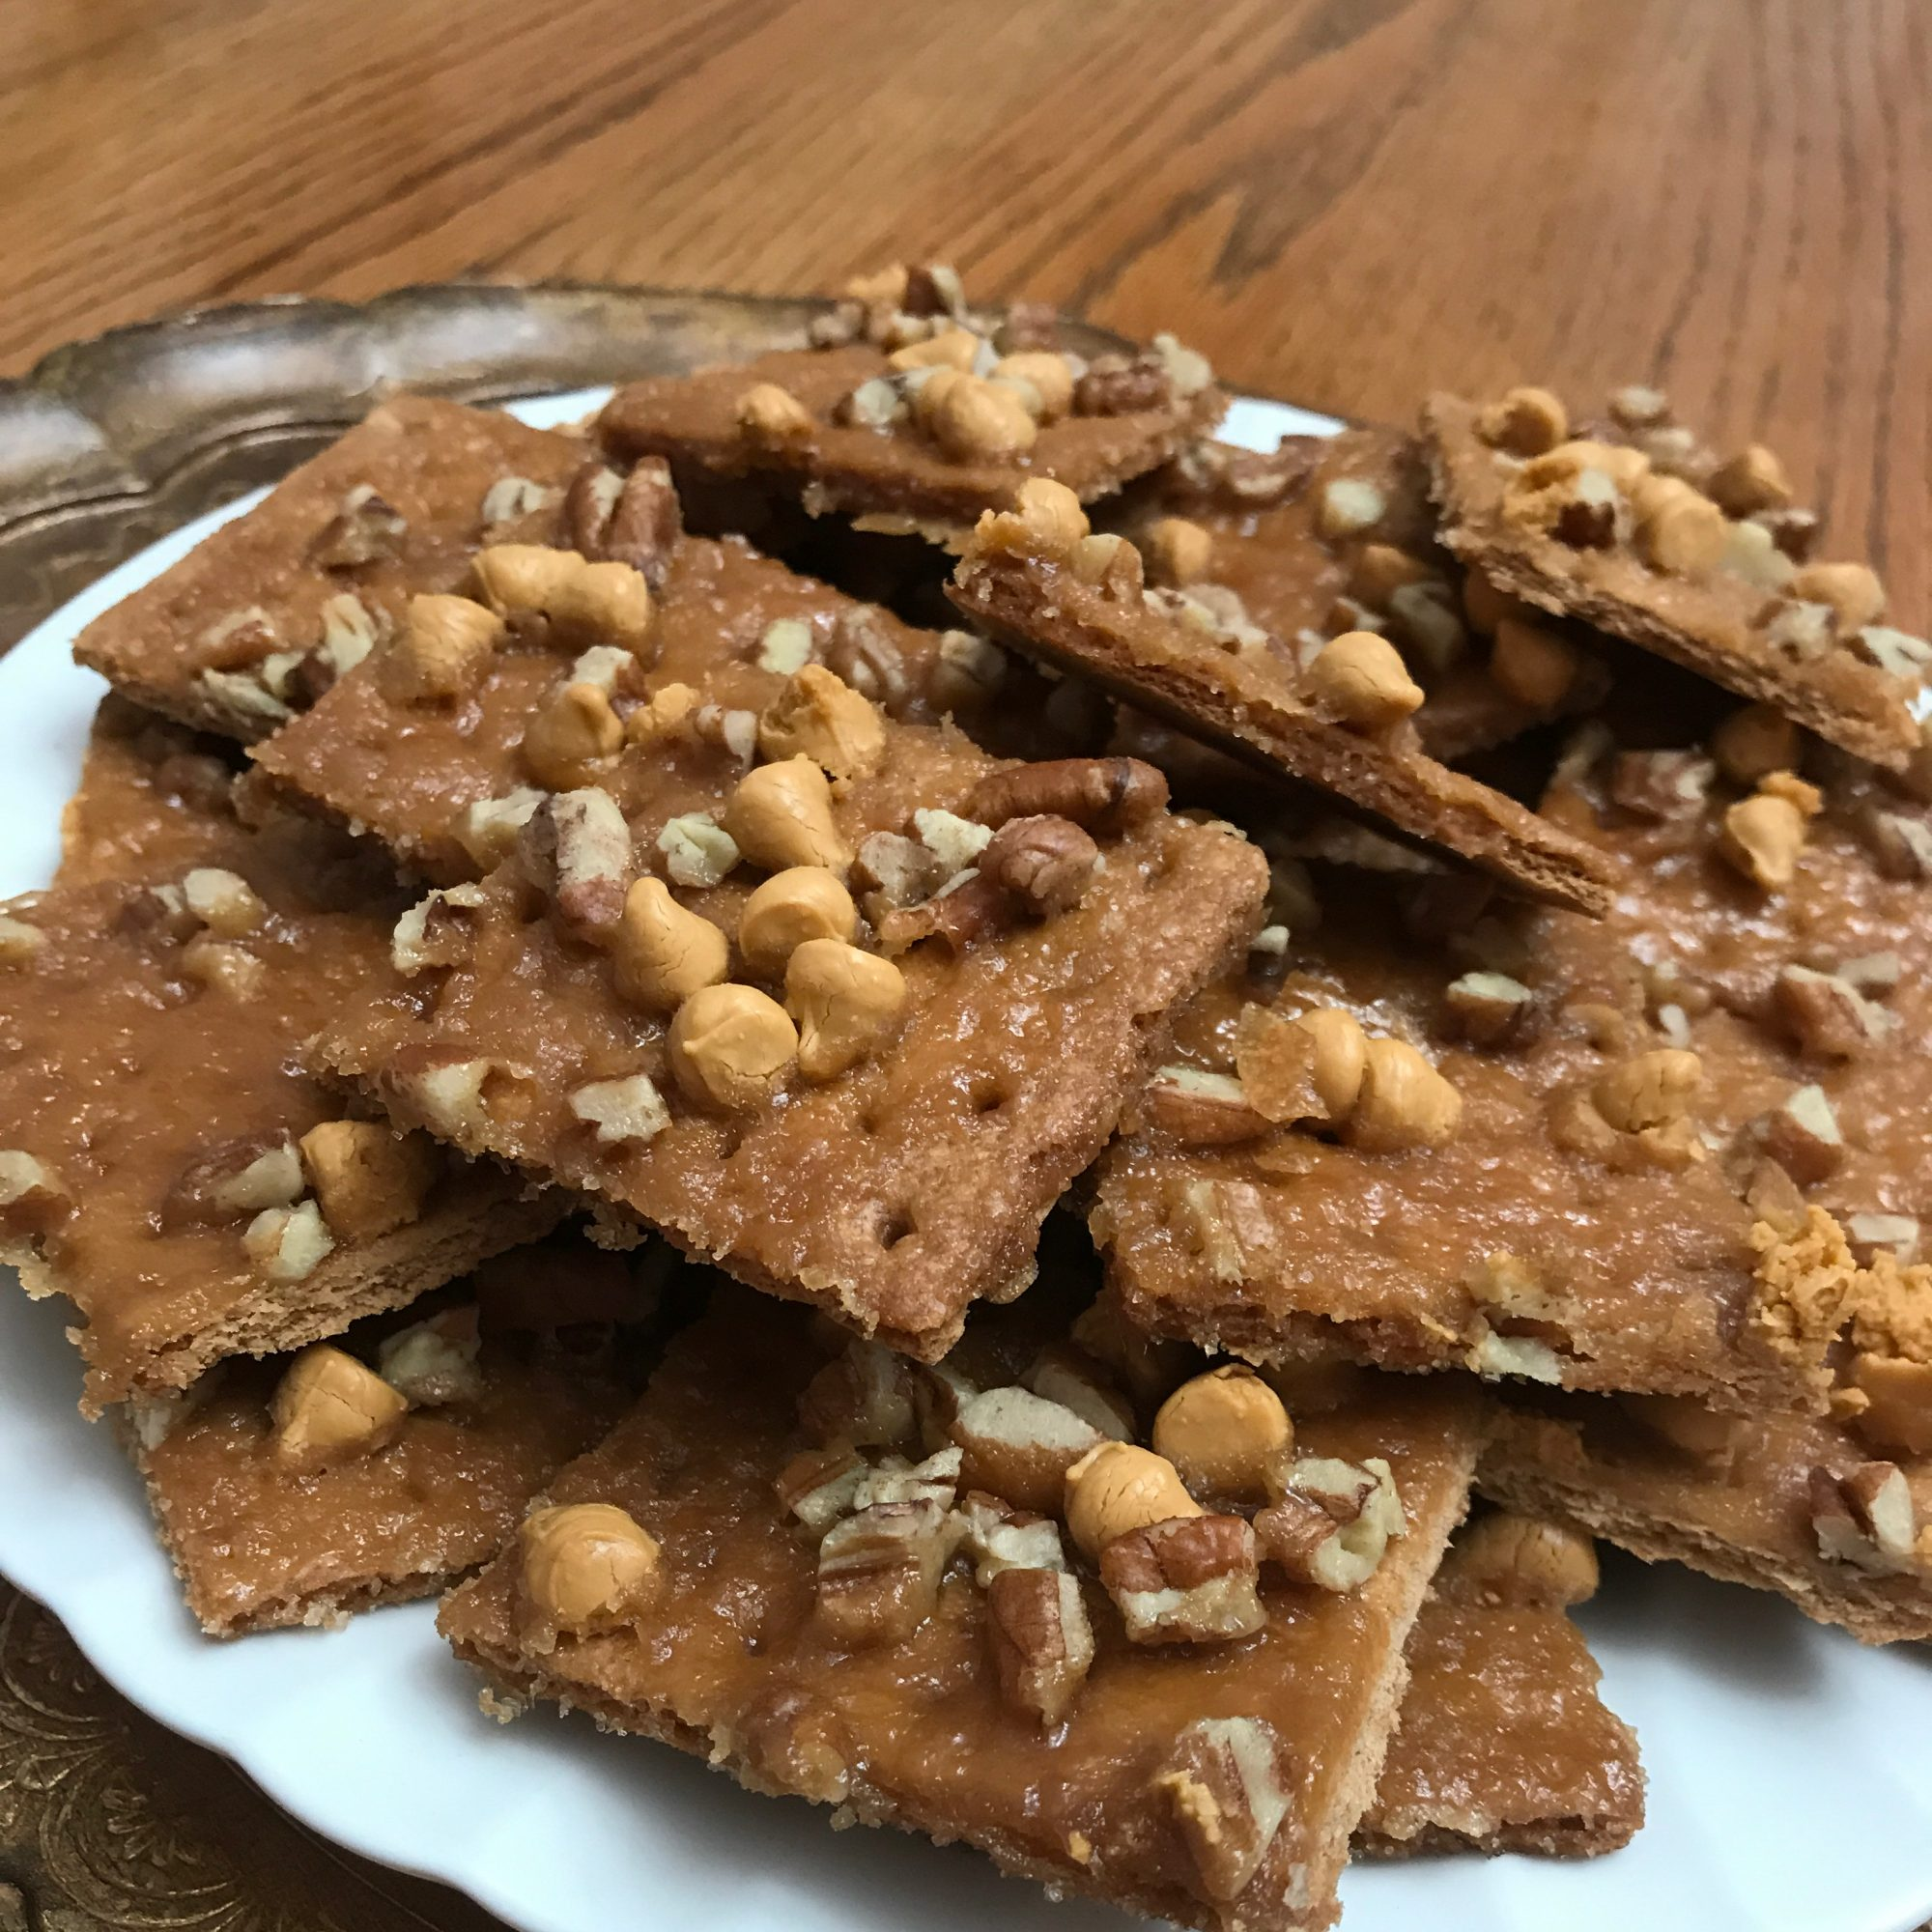 Praline Strips topped with pecans